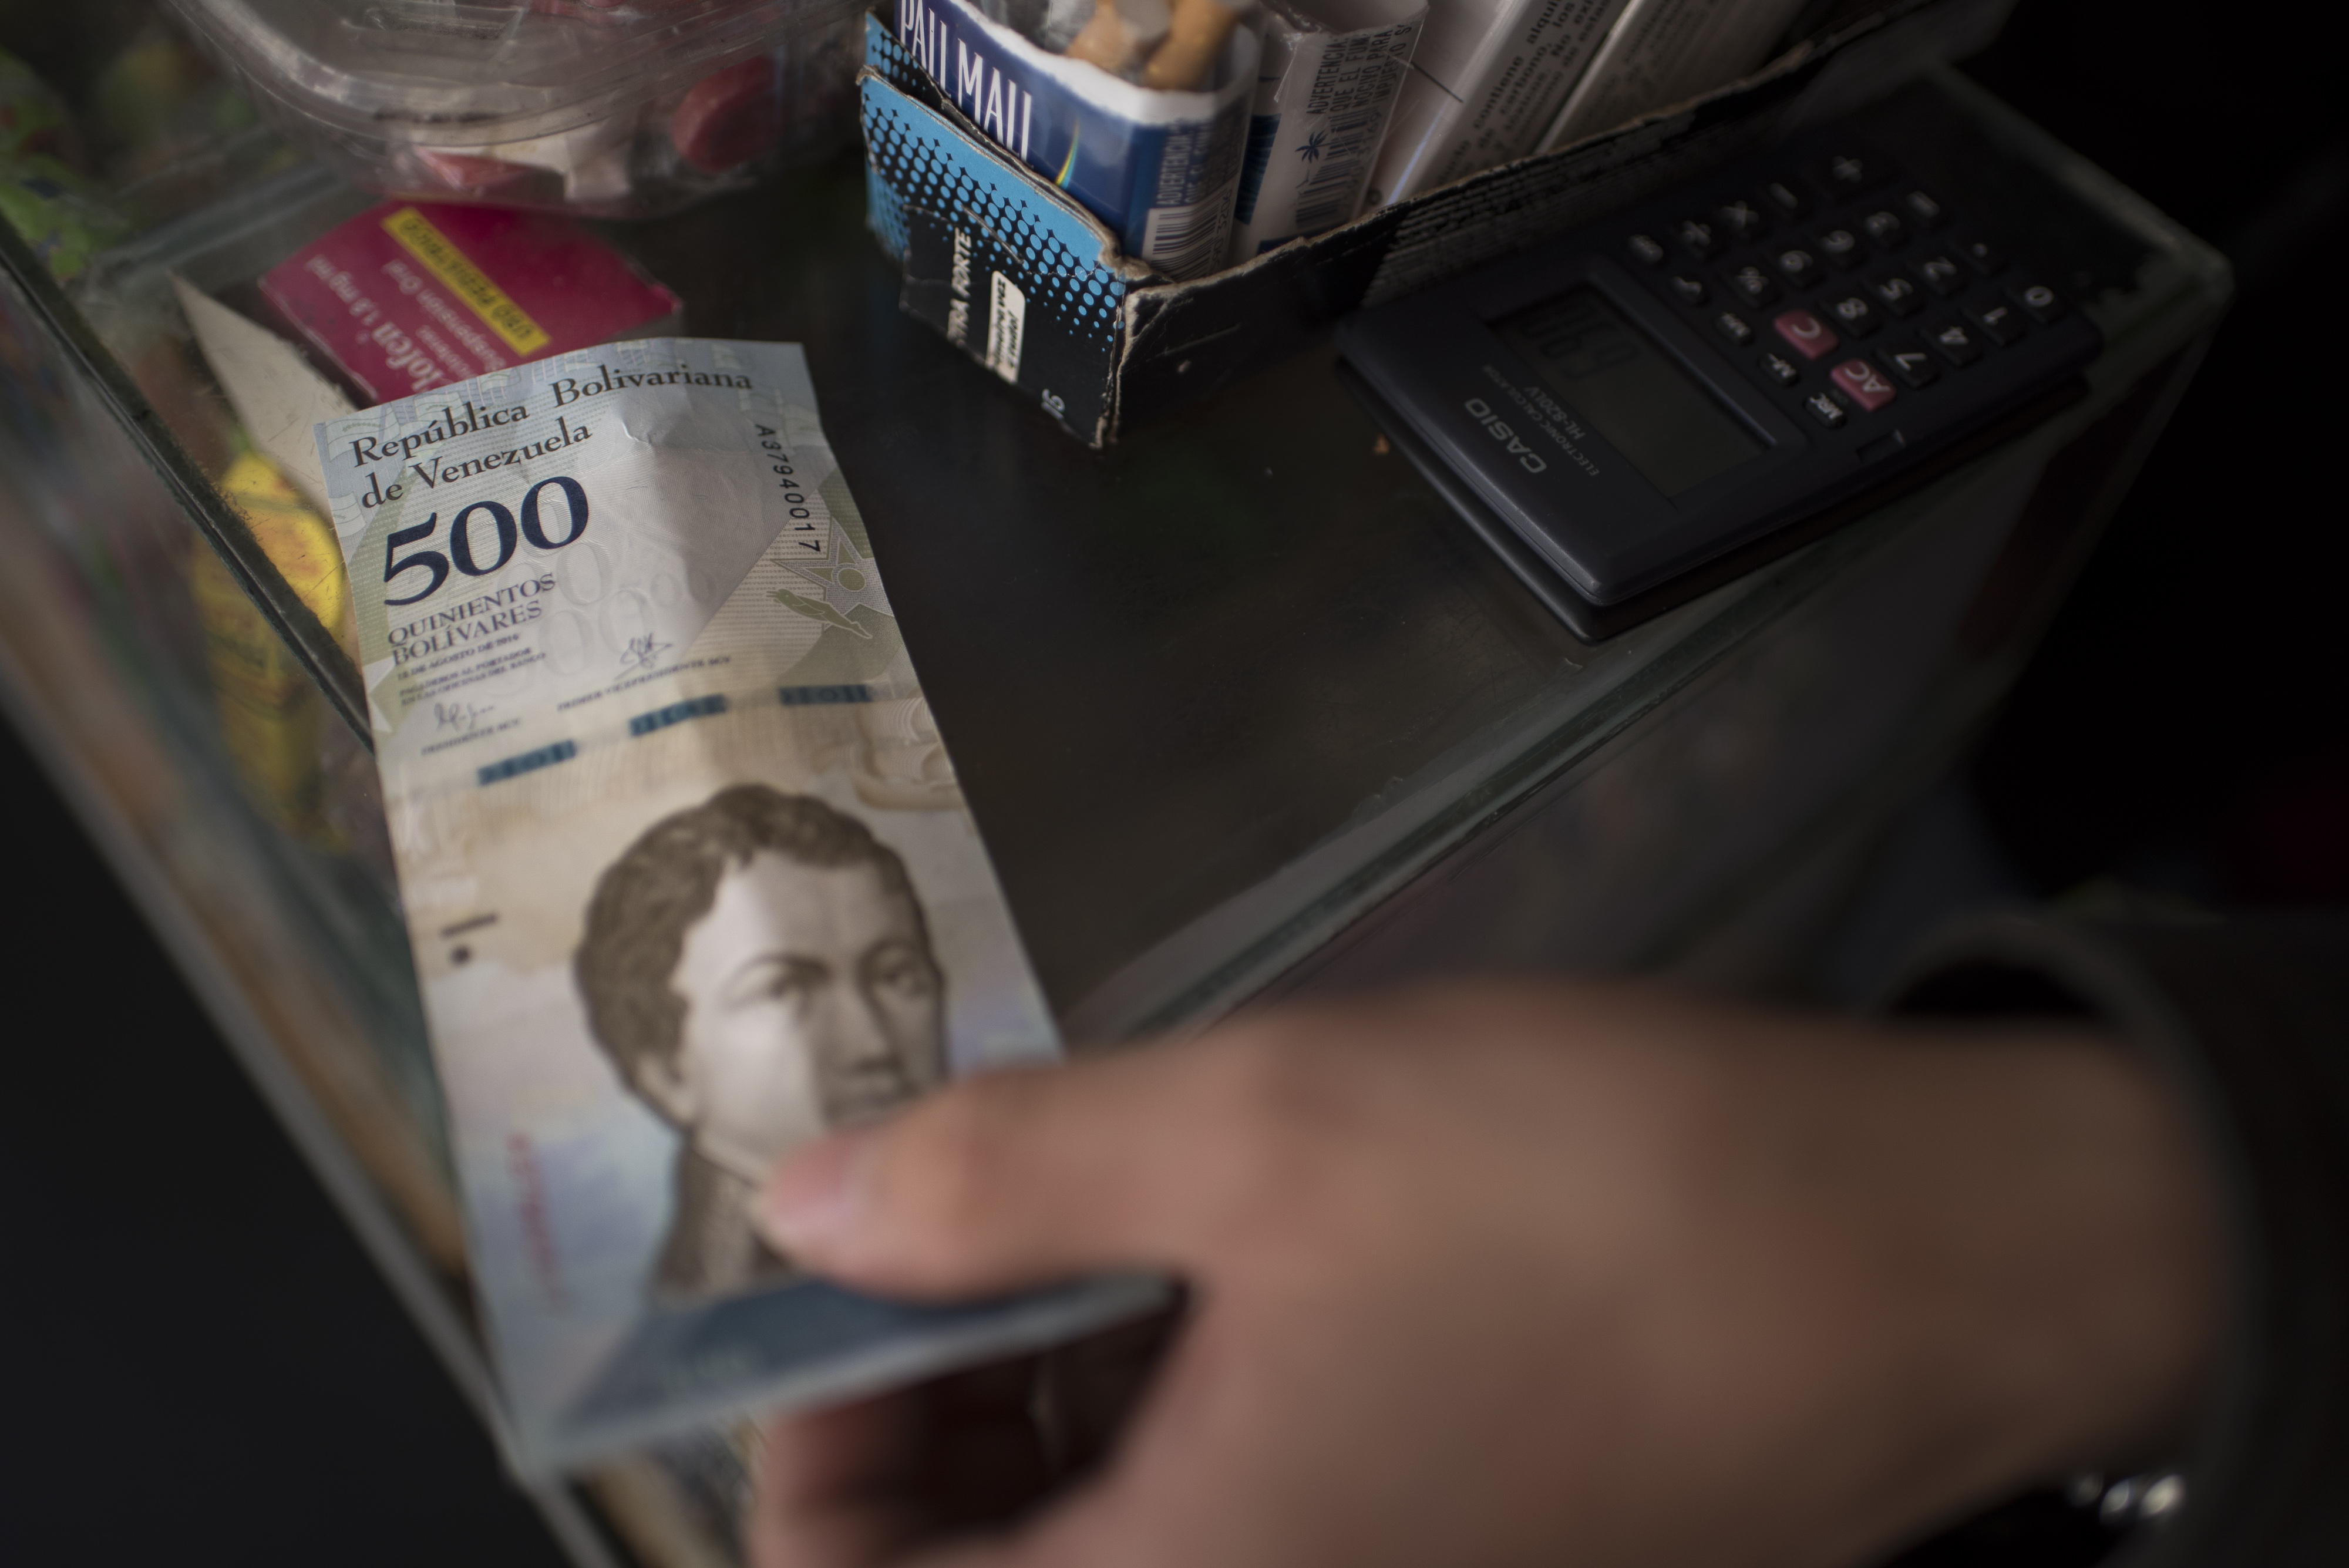 A vendor reaches a new 500-bolivar banknote from a customer at a stand in Caracas on Jan. 17, 2017